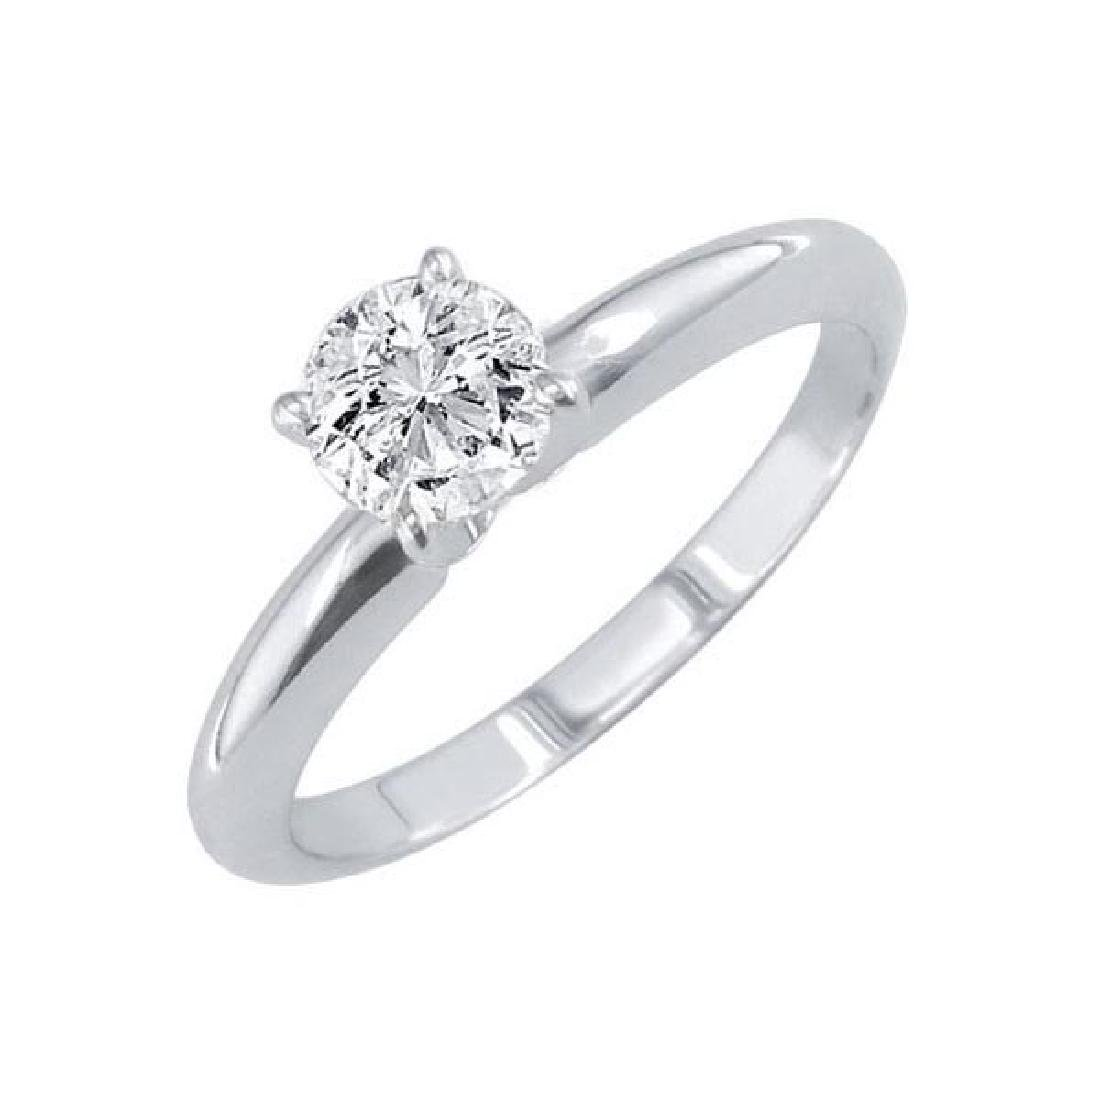 Certified 1 CTW Round Diamond Solitaire 14k Ring I/I1